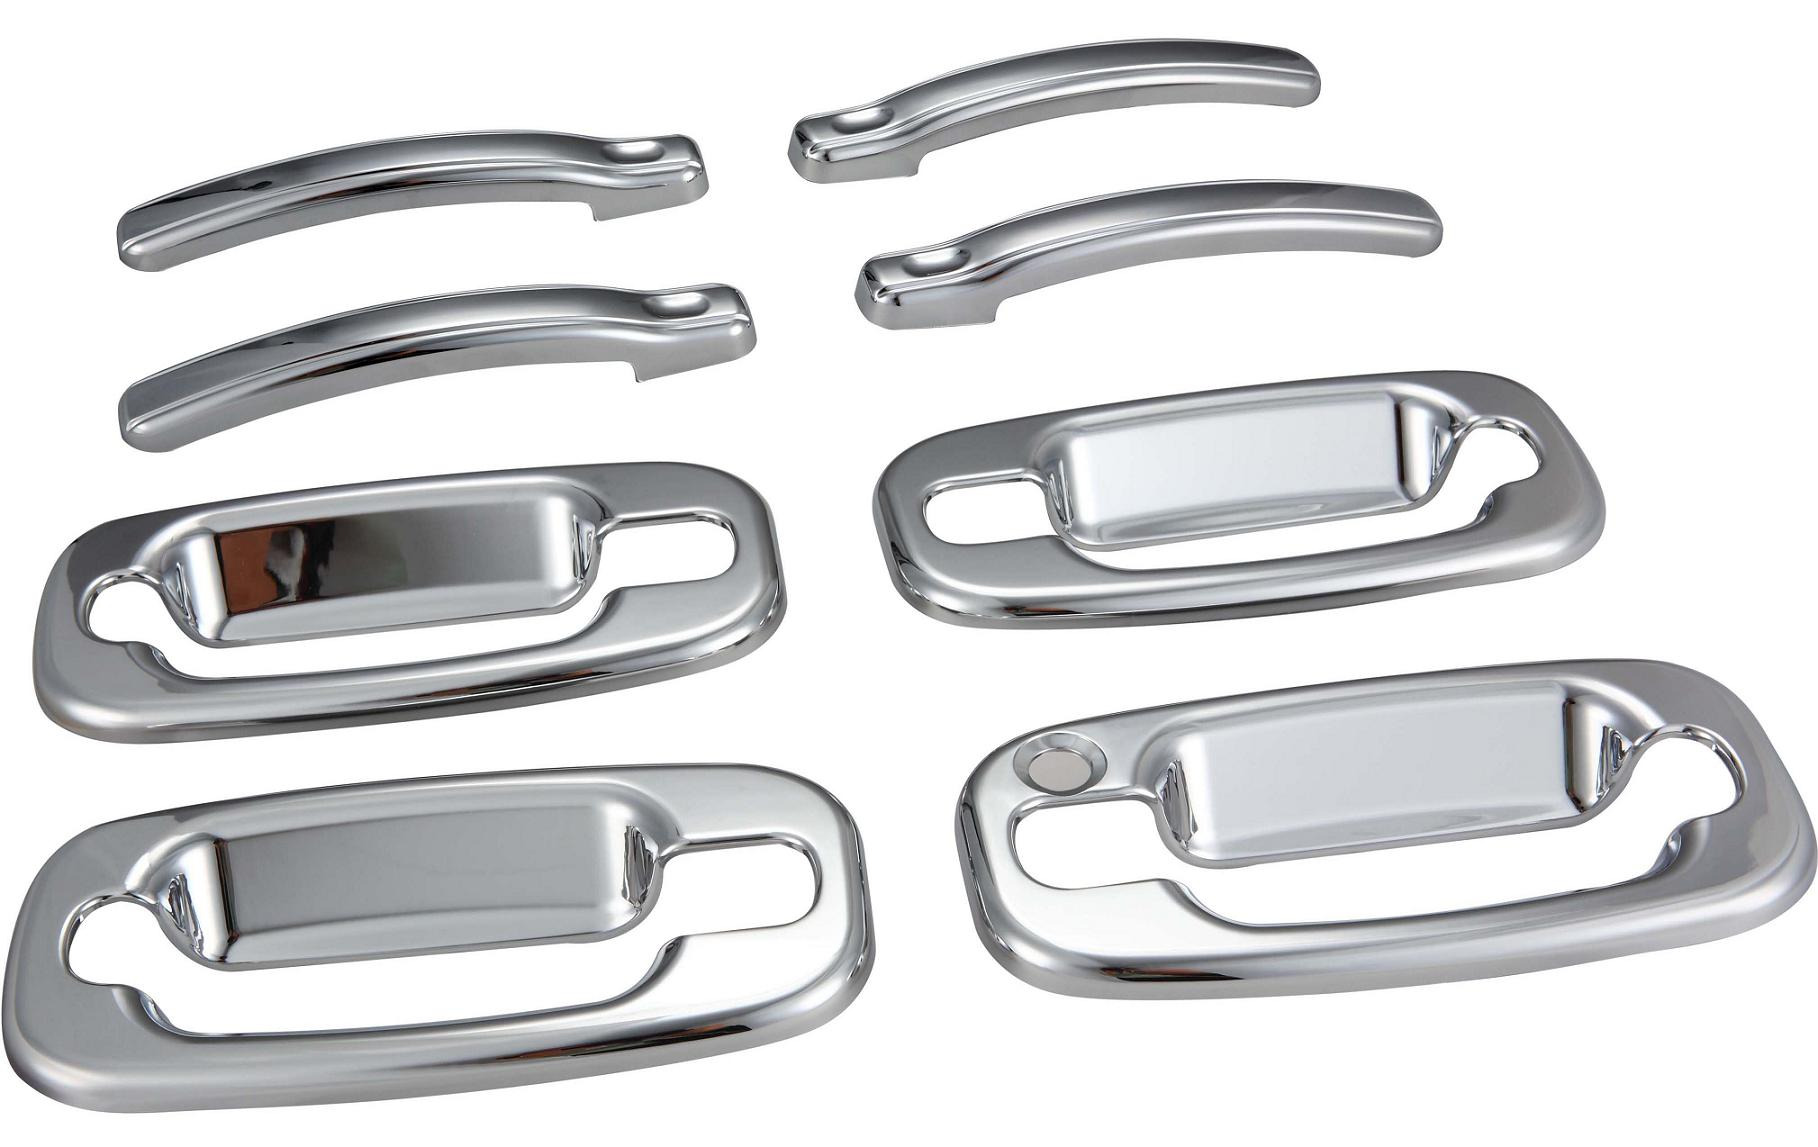 Ford F150 Parts And Accessories The chrome door handle trim enhances the look of your Door Handles ...